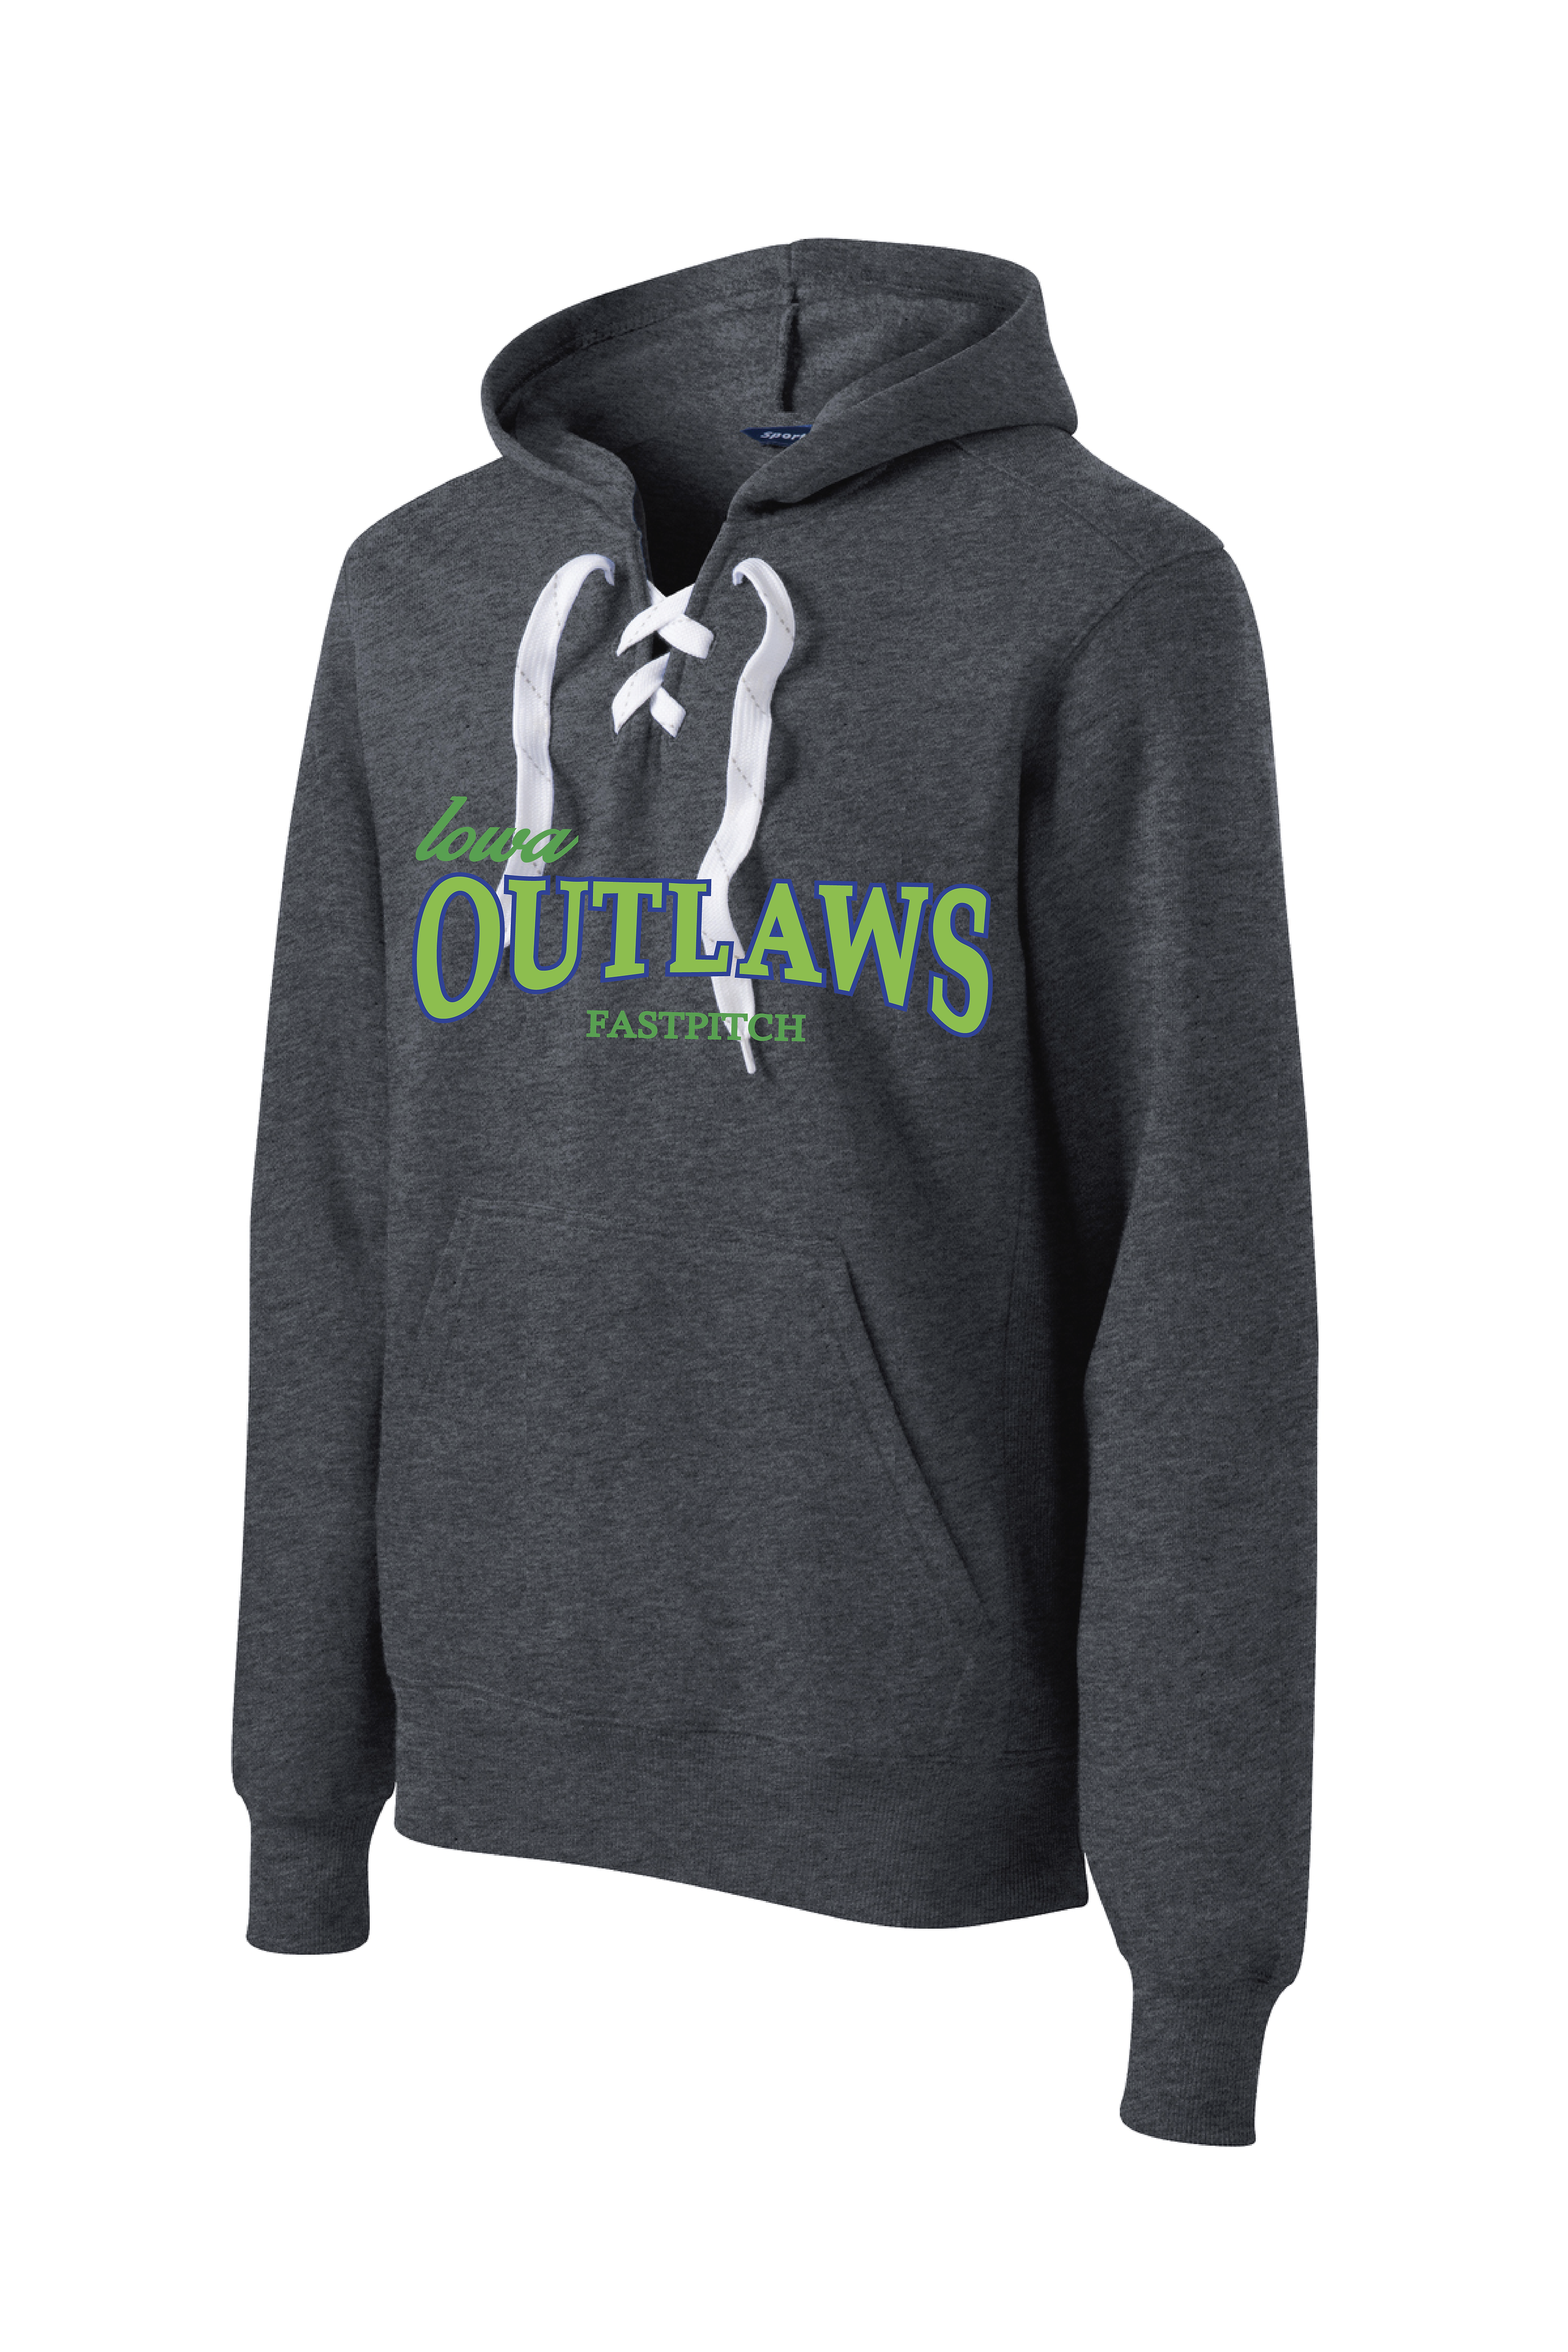 Iowa Outlaws Lace Up Hoodie